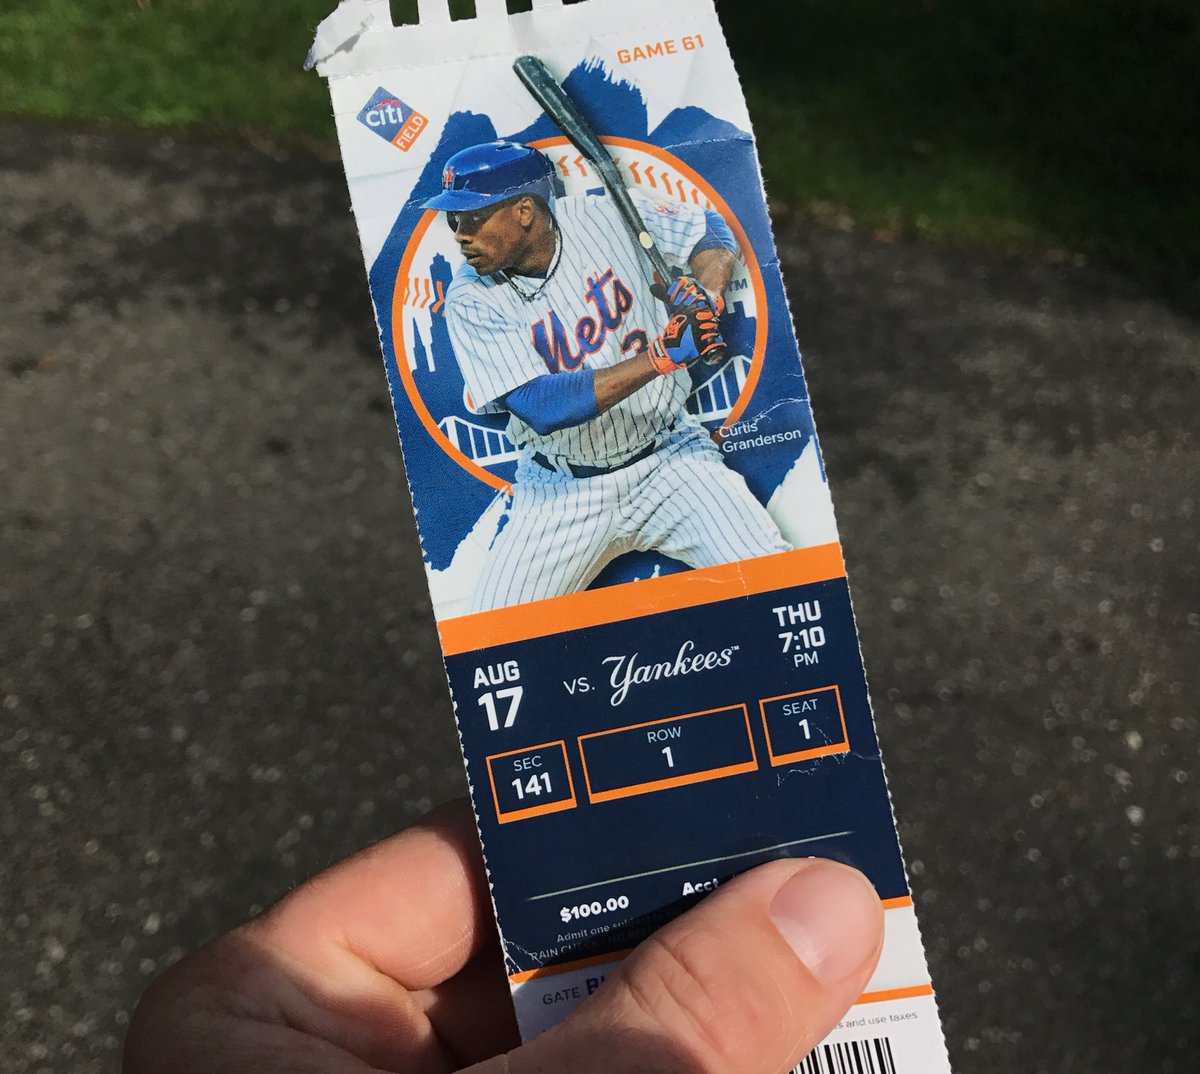 In his last game as a Met, Curtis was on the ticket stub and hit a grand slam against the Yankees.